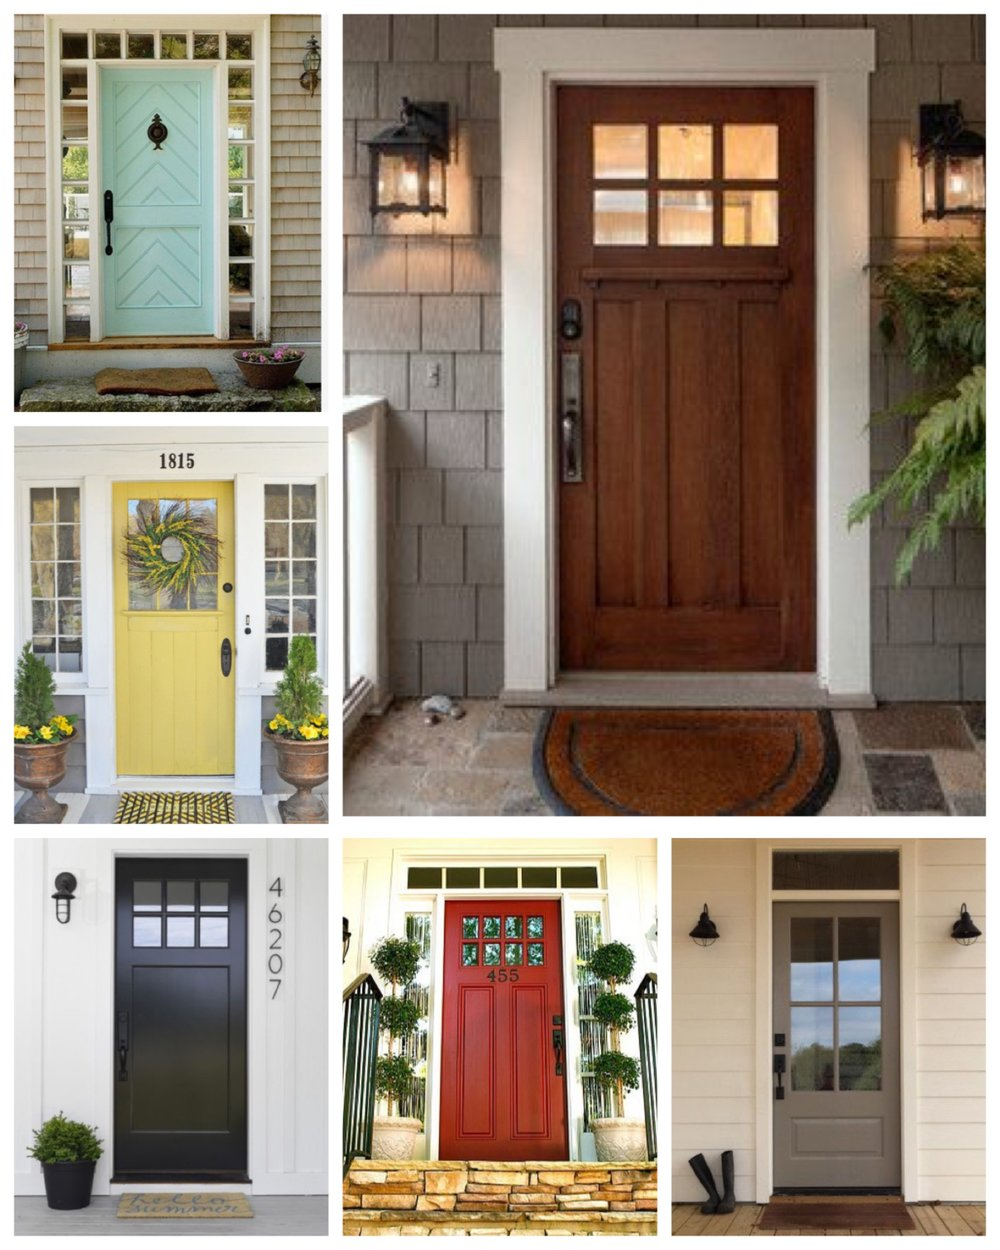 Is it clean? Does it need maintenance? Or does it just need some freshening up? Here are a few ways to make a good impression with your front door. & First Impressions - The Front DoorGraber Interiors